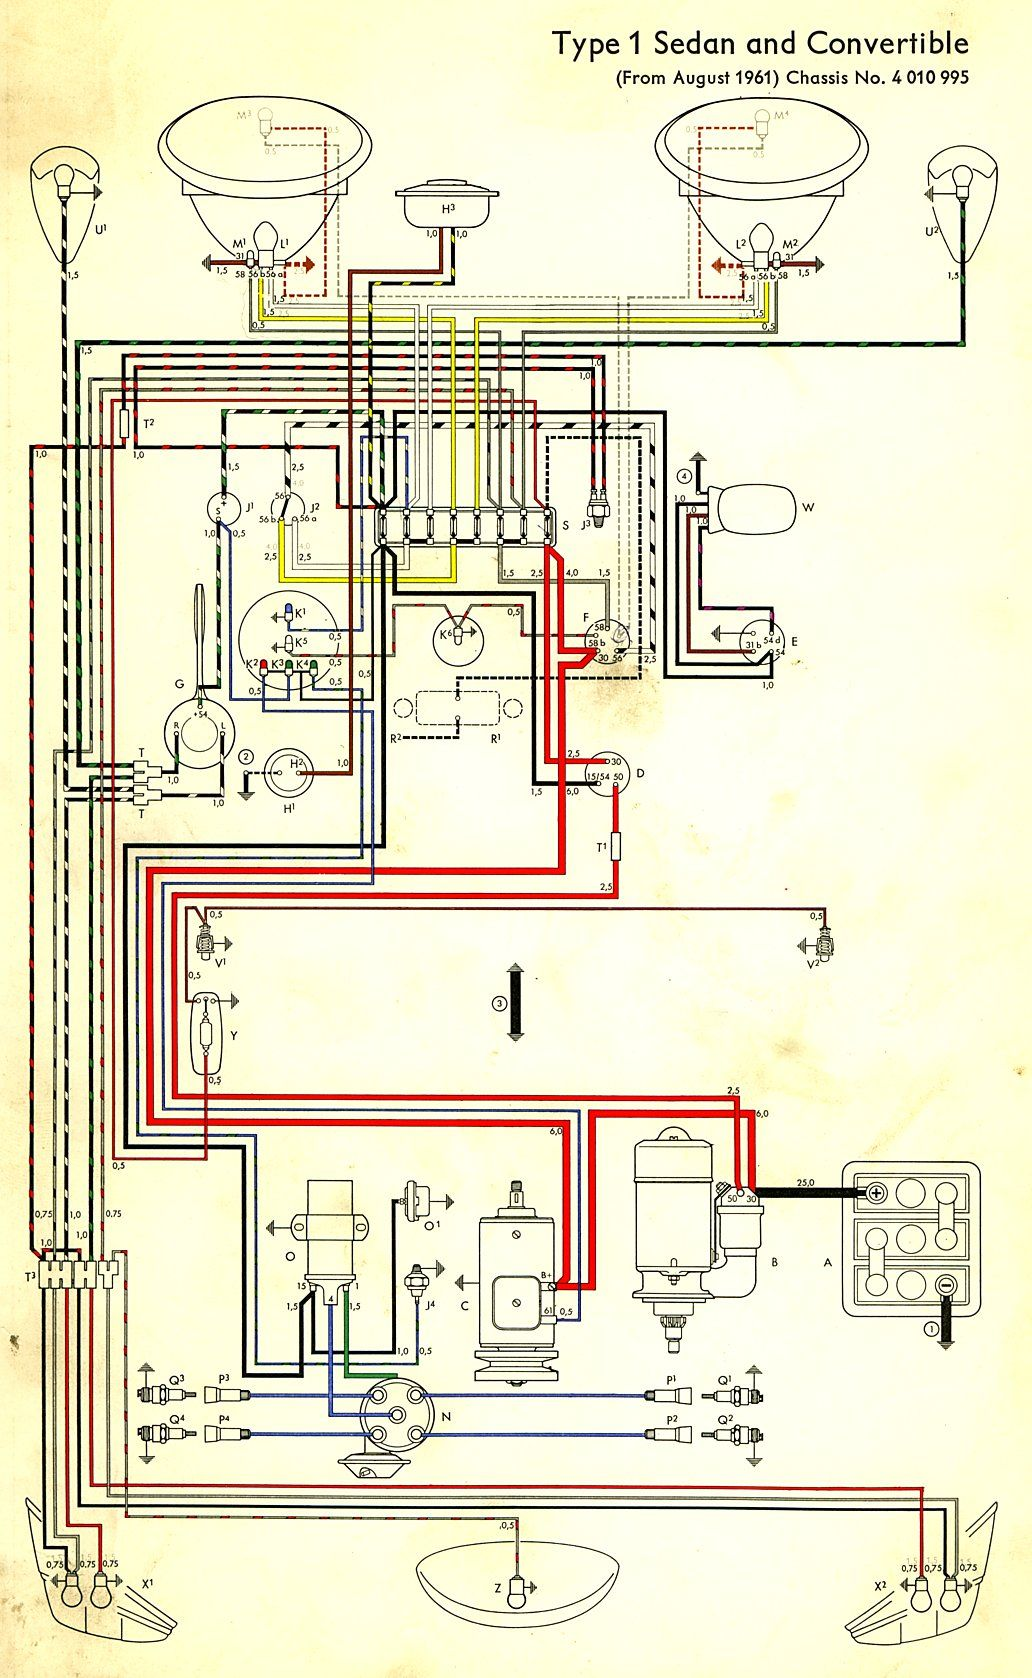 hight resolution of wiring diagram in color 1964 vw bug beetle convertible the samba wiring diagram for 1964 vw bus